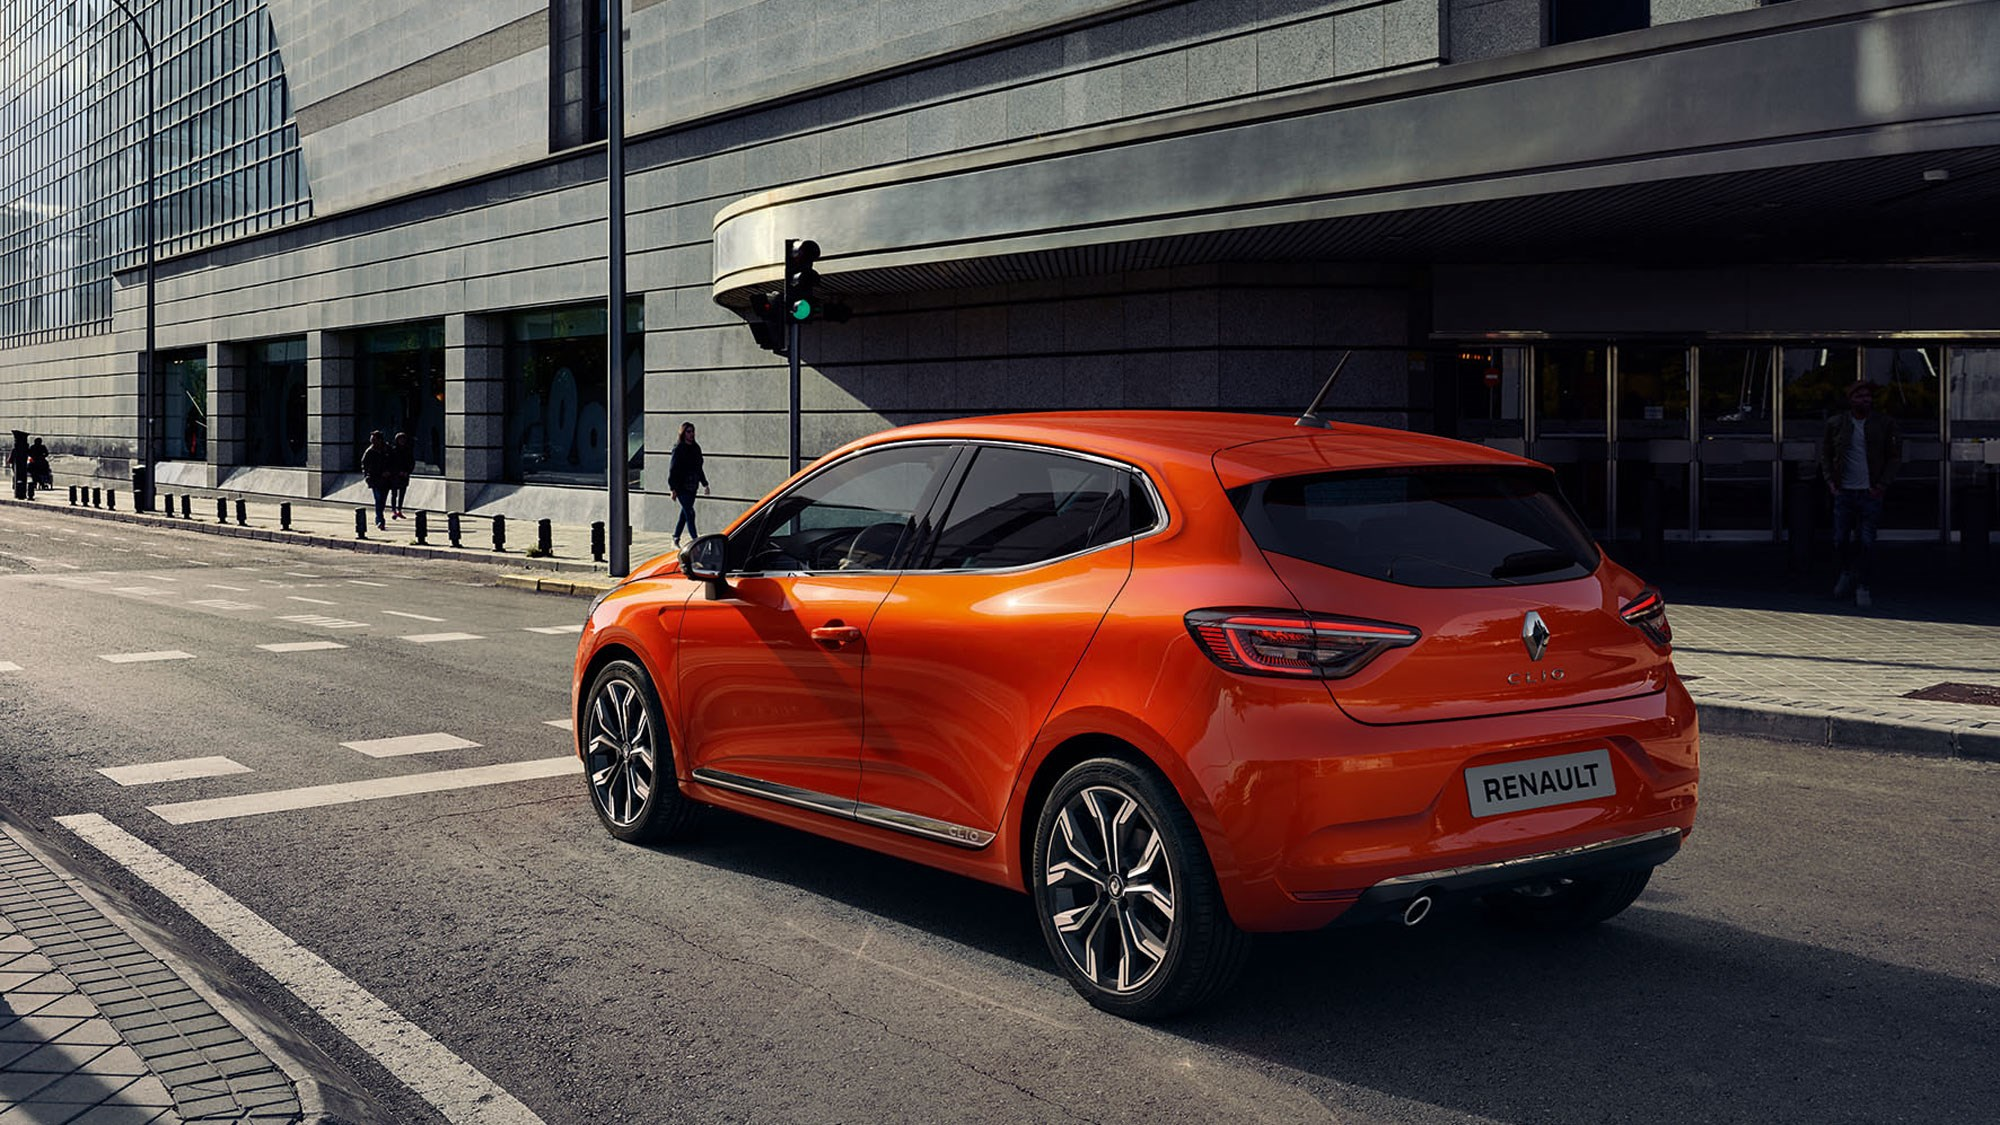 New Renault Clio Priced From 14 295 Undercuts Fiesta